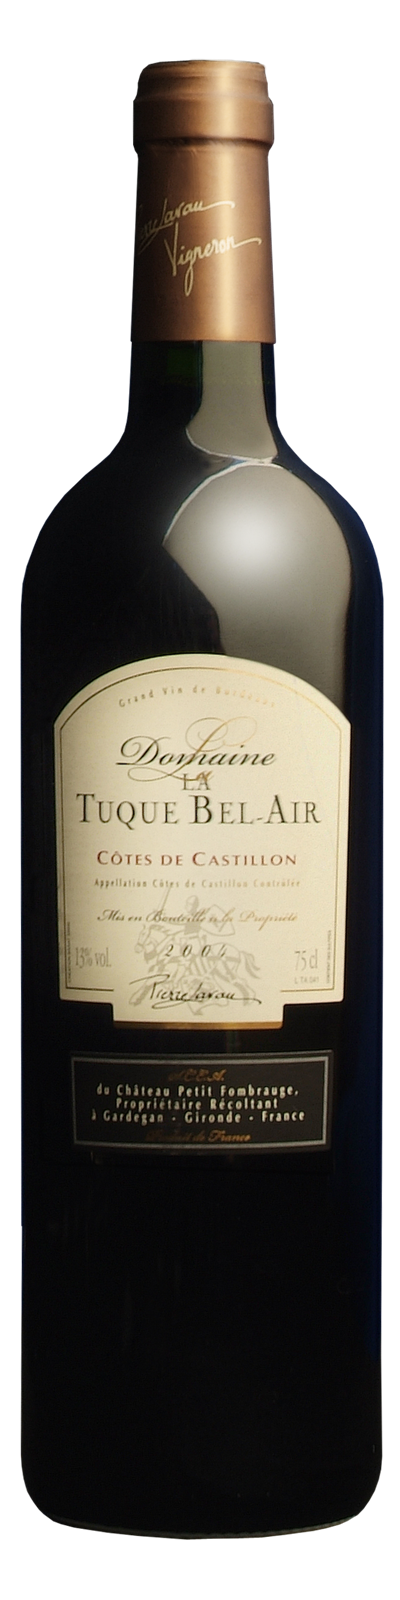 Magnum Domaine La Tuque Bel Air AOC Castillon Côtes de Bordeaux - Photo 1